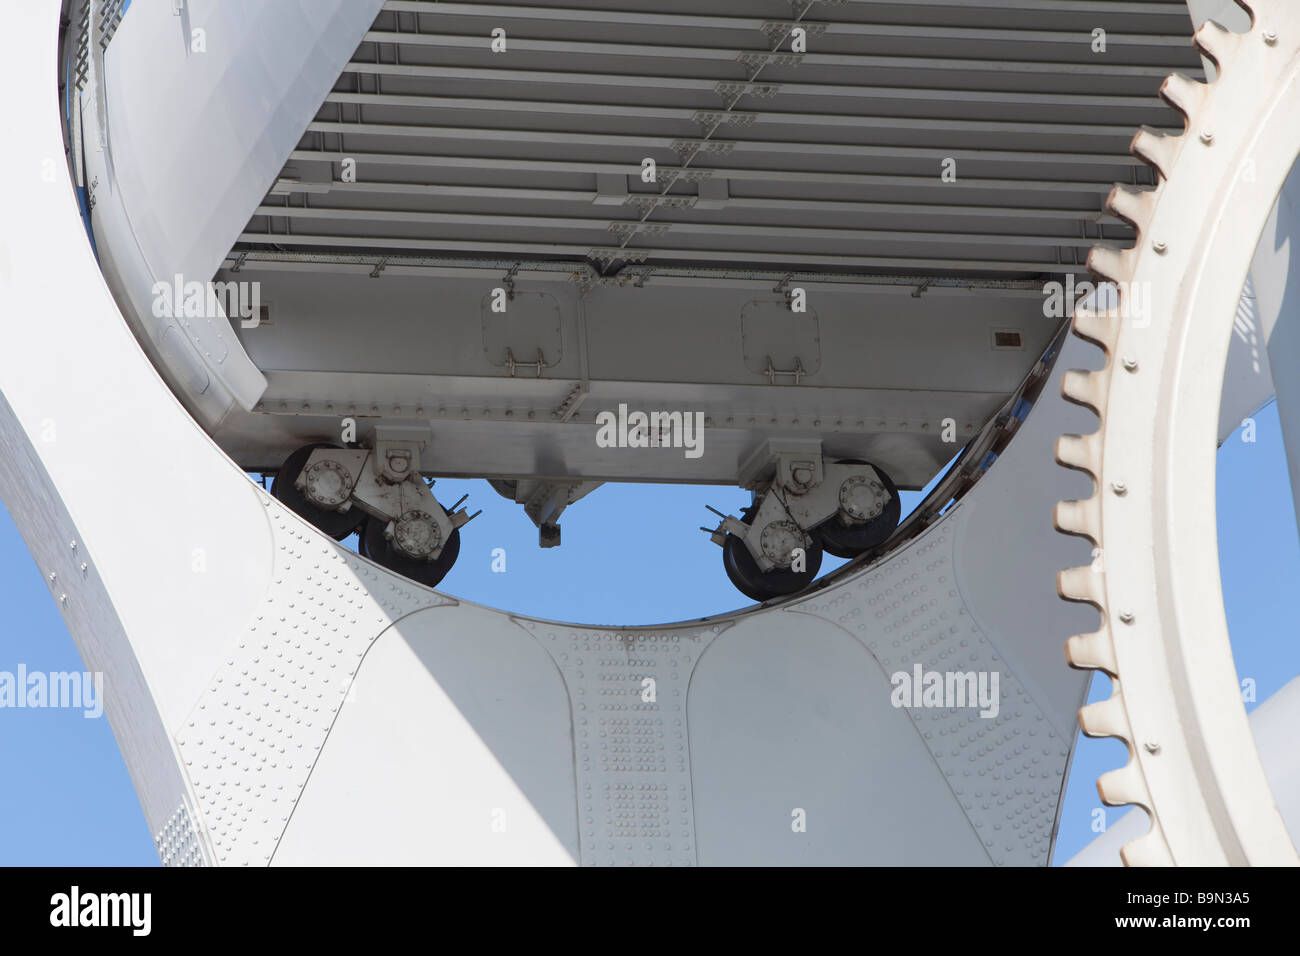 Close up detail of gondola on the Falkirk Wheel as it rotates - Stock Image